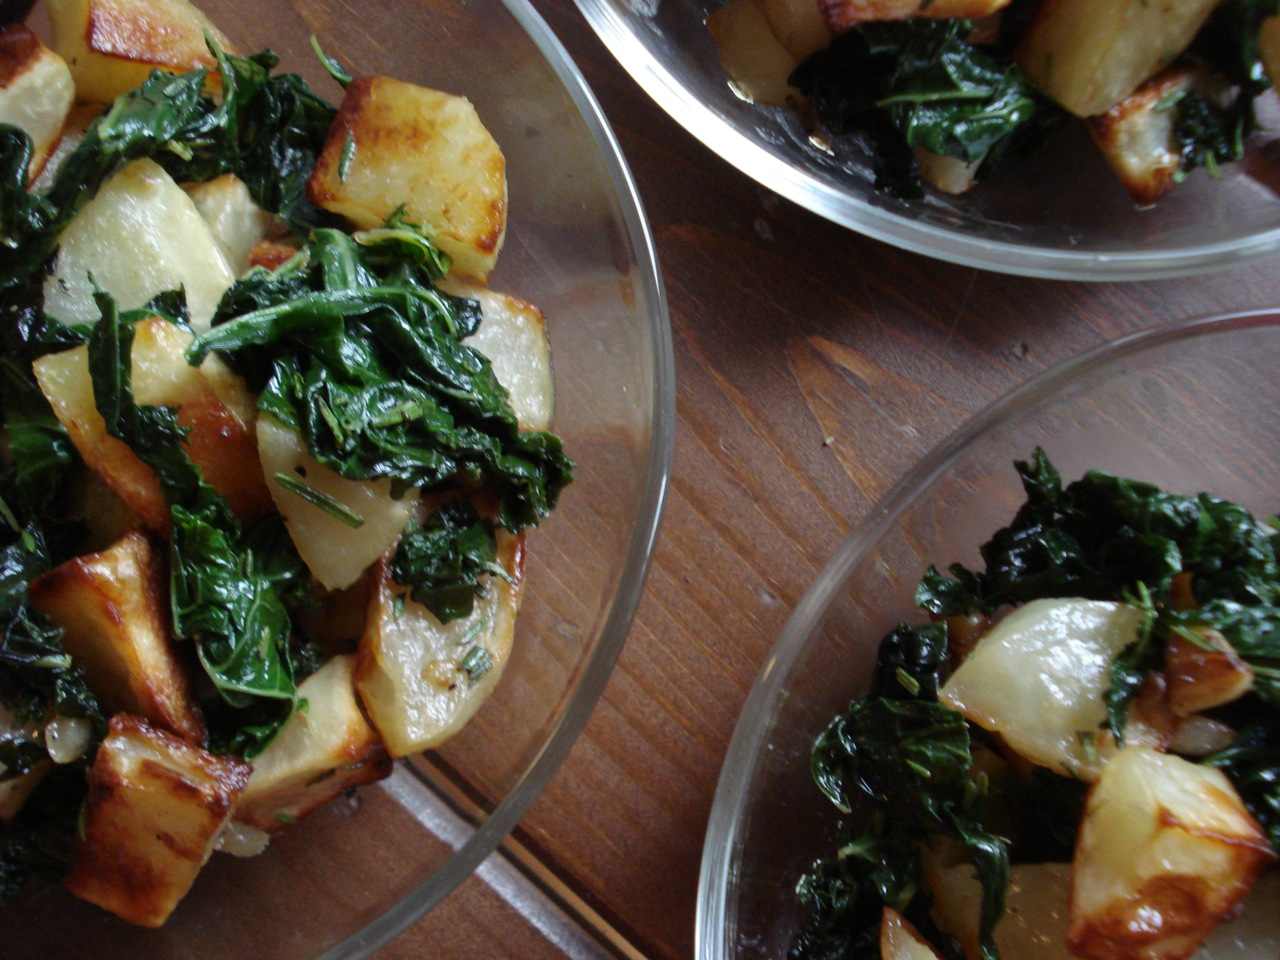 Potatoes w/ Swiss Chard, Rosemary & Garlic